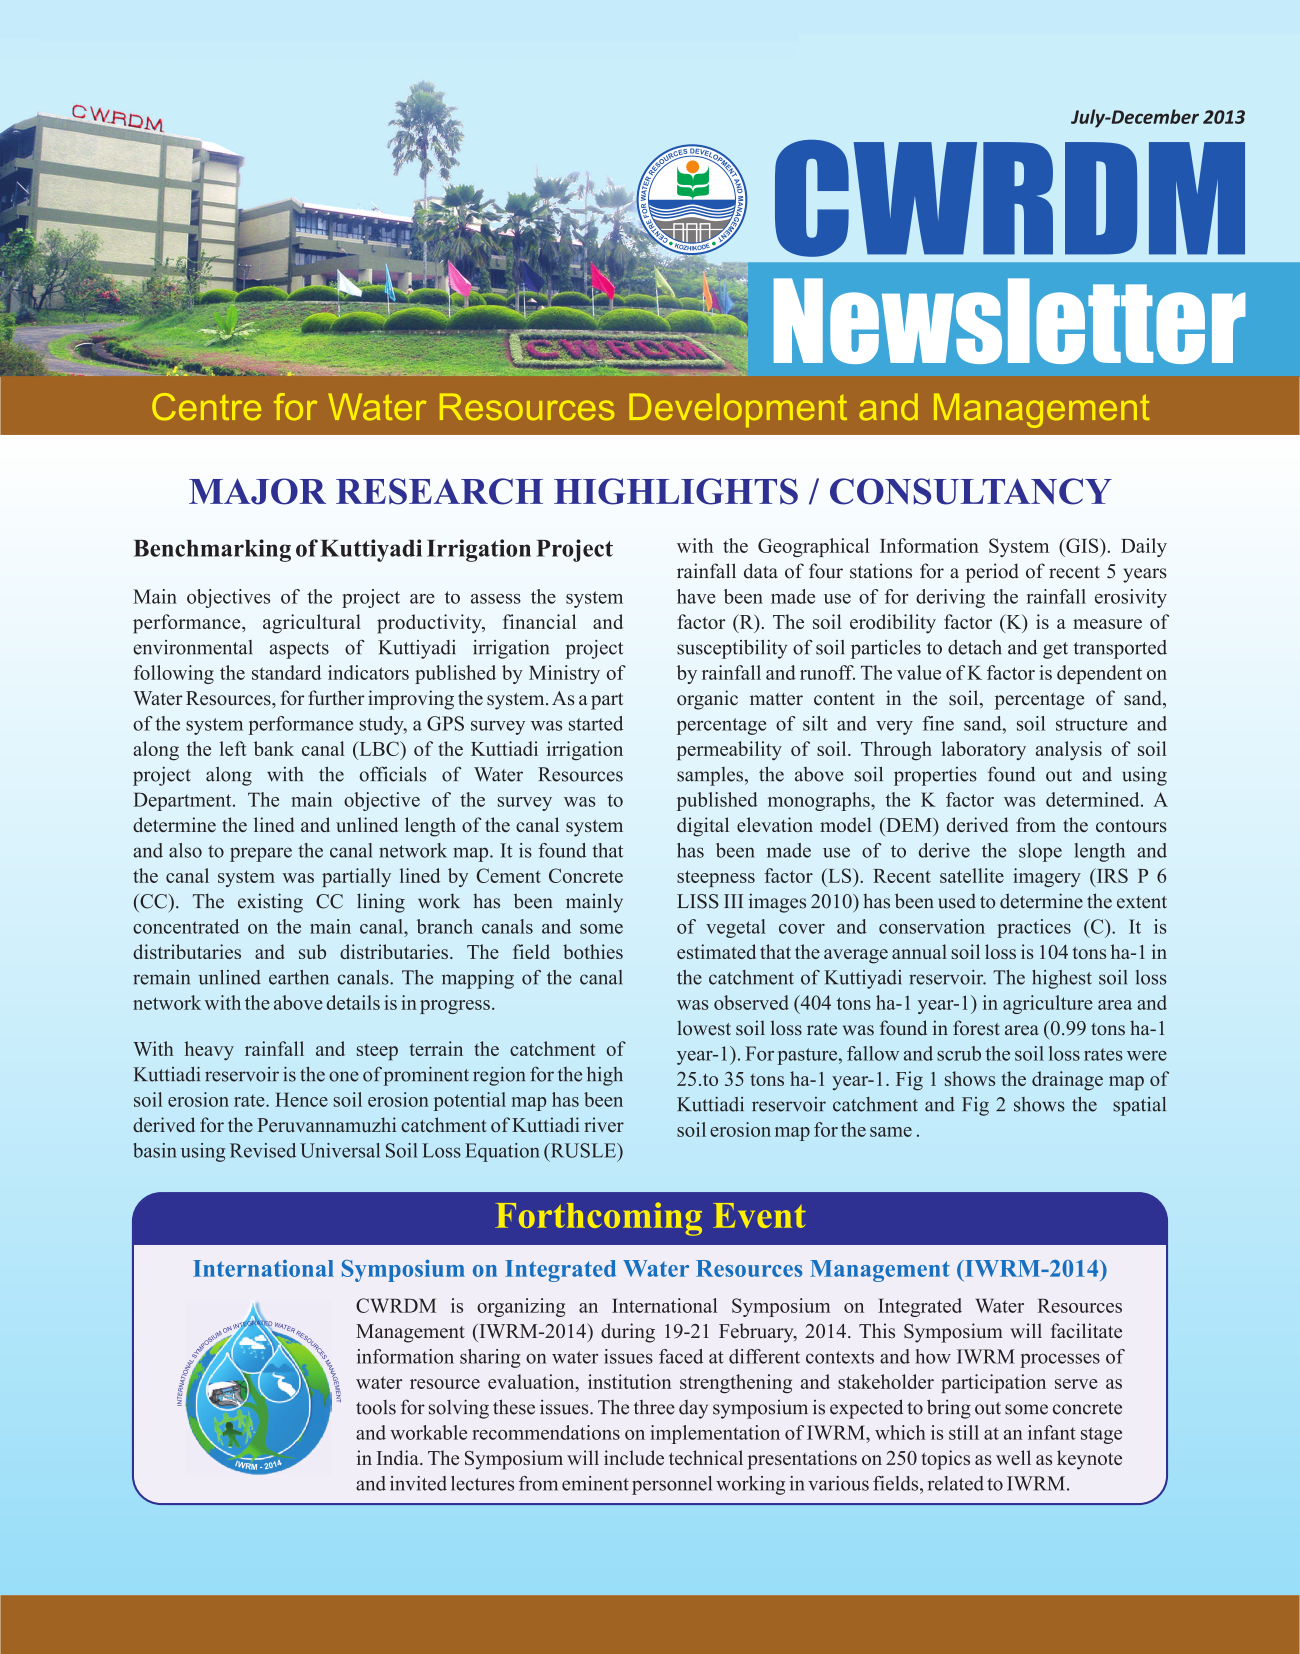 CWRDM Newsletter